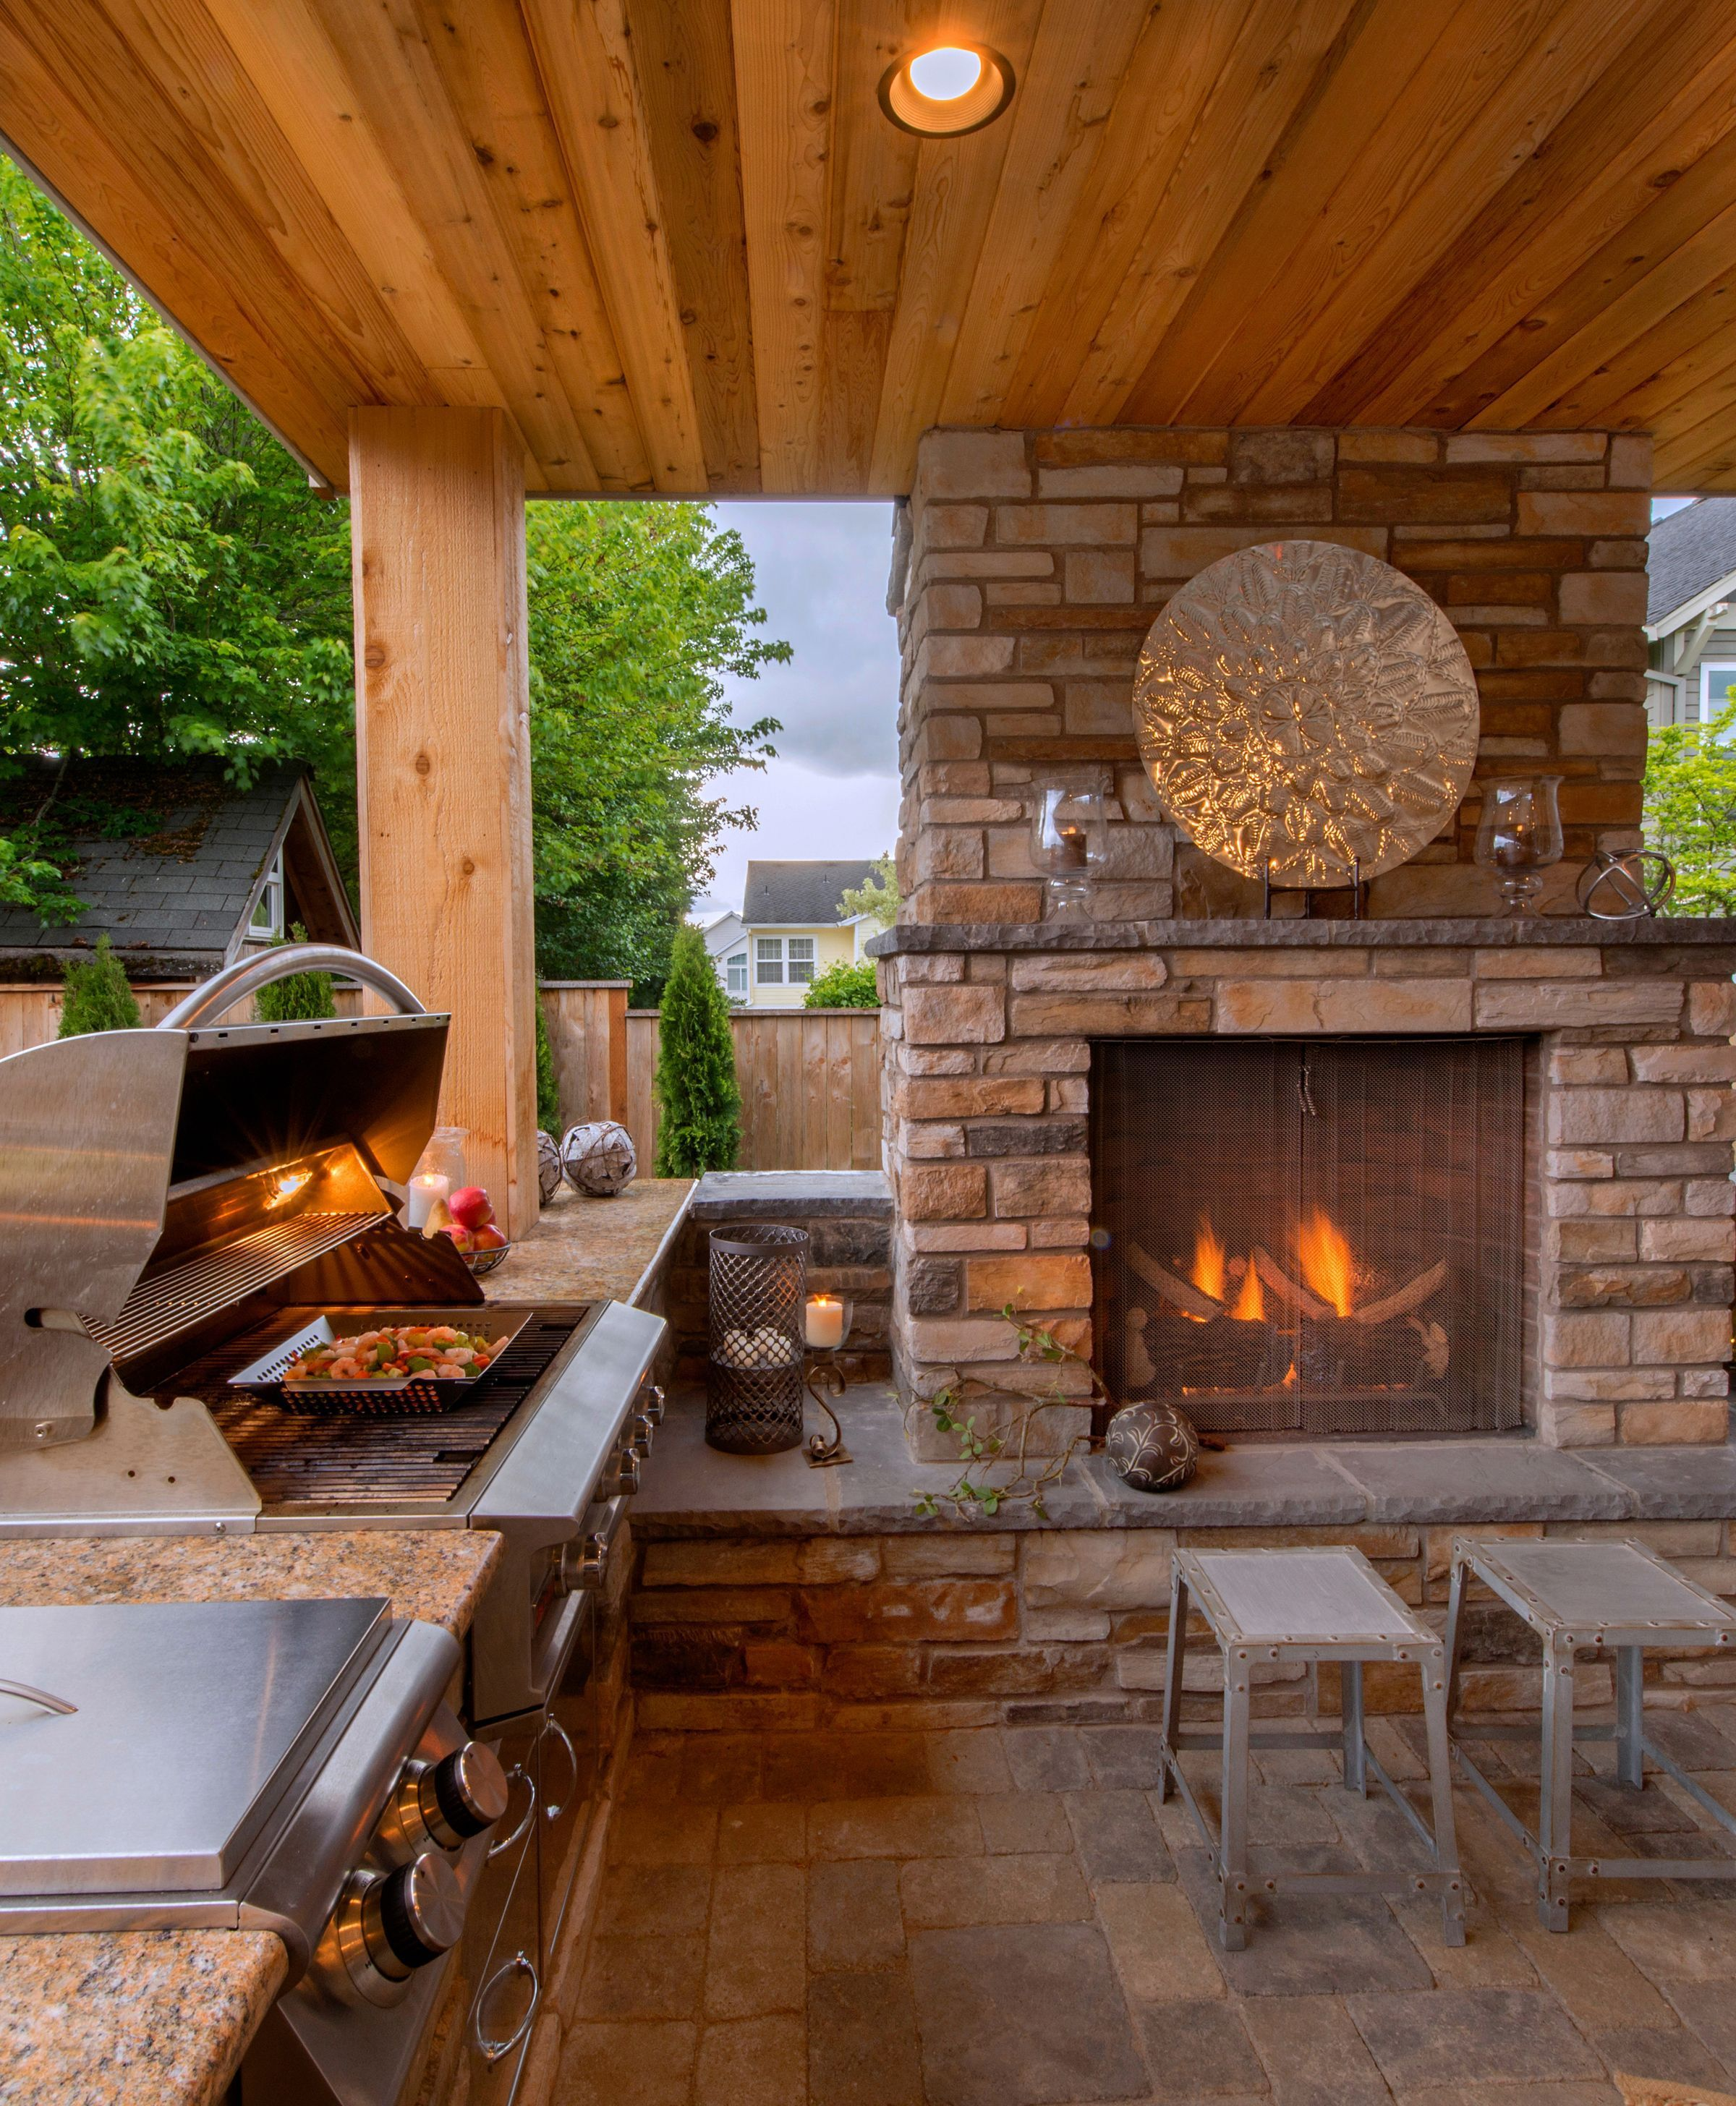 outdoor living blog site incredible collection of exterior kitchen area sty outdoor kitchen on outdoor kitchen plans layout id=55250